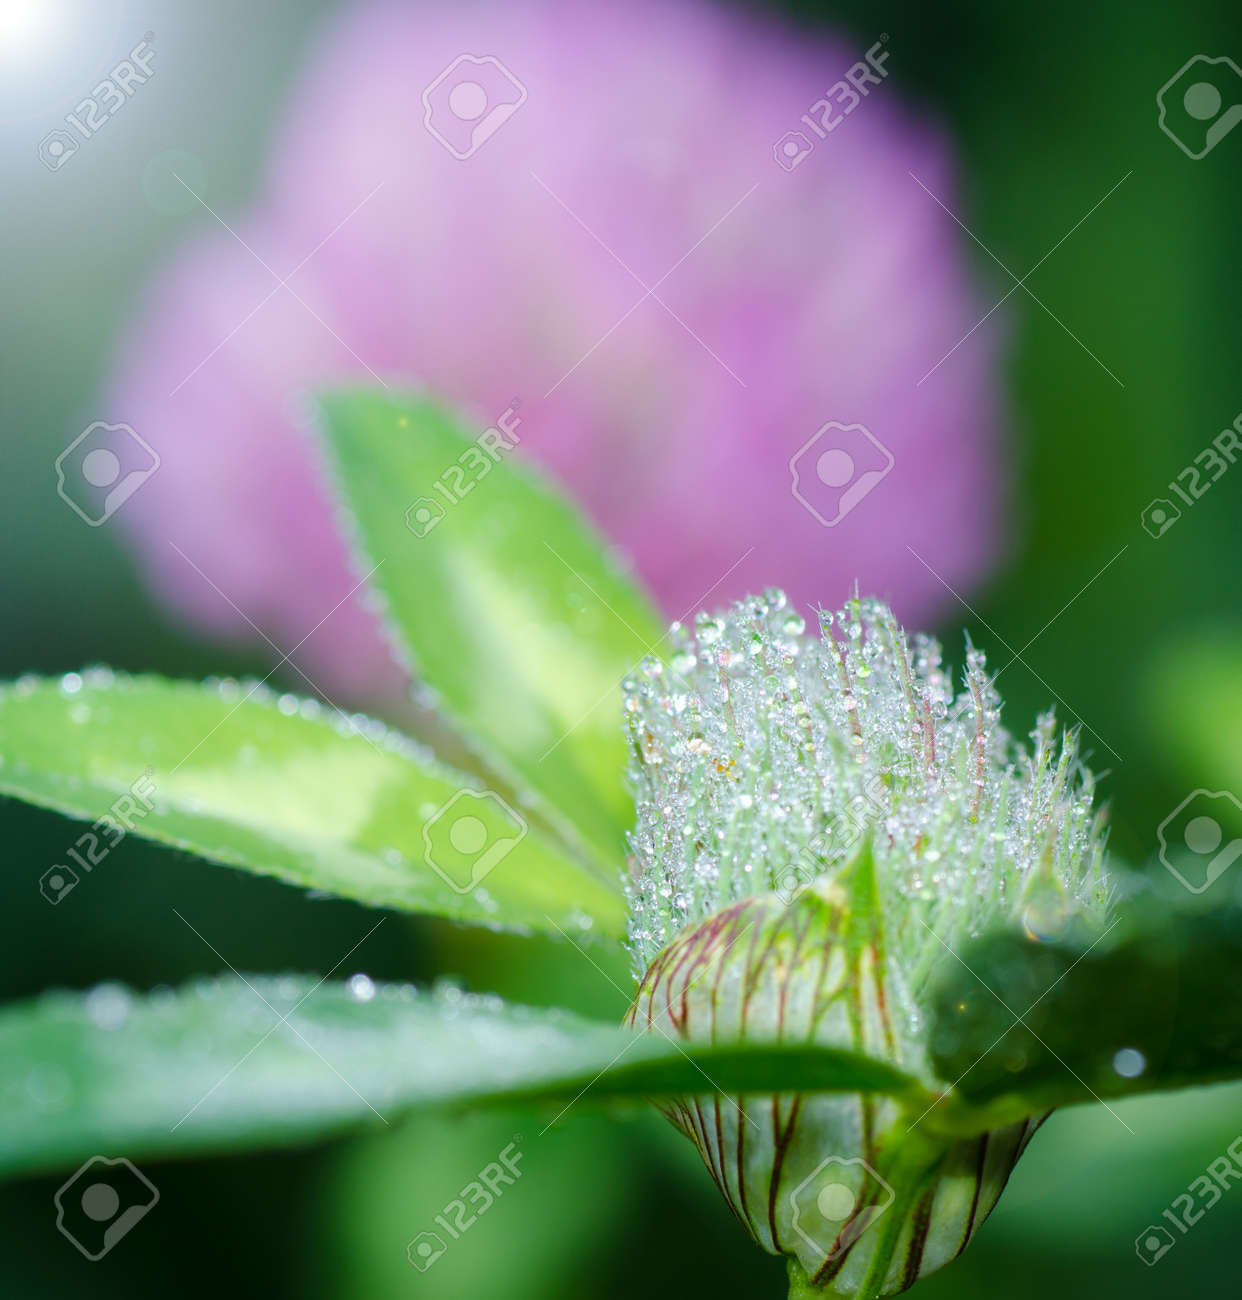 Fresh Ð¡lover Flowers Blossom with Drops of Dew - 25887623